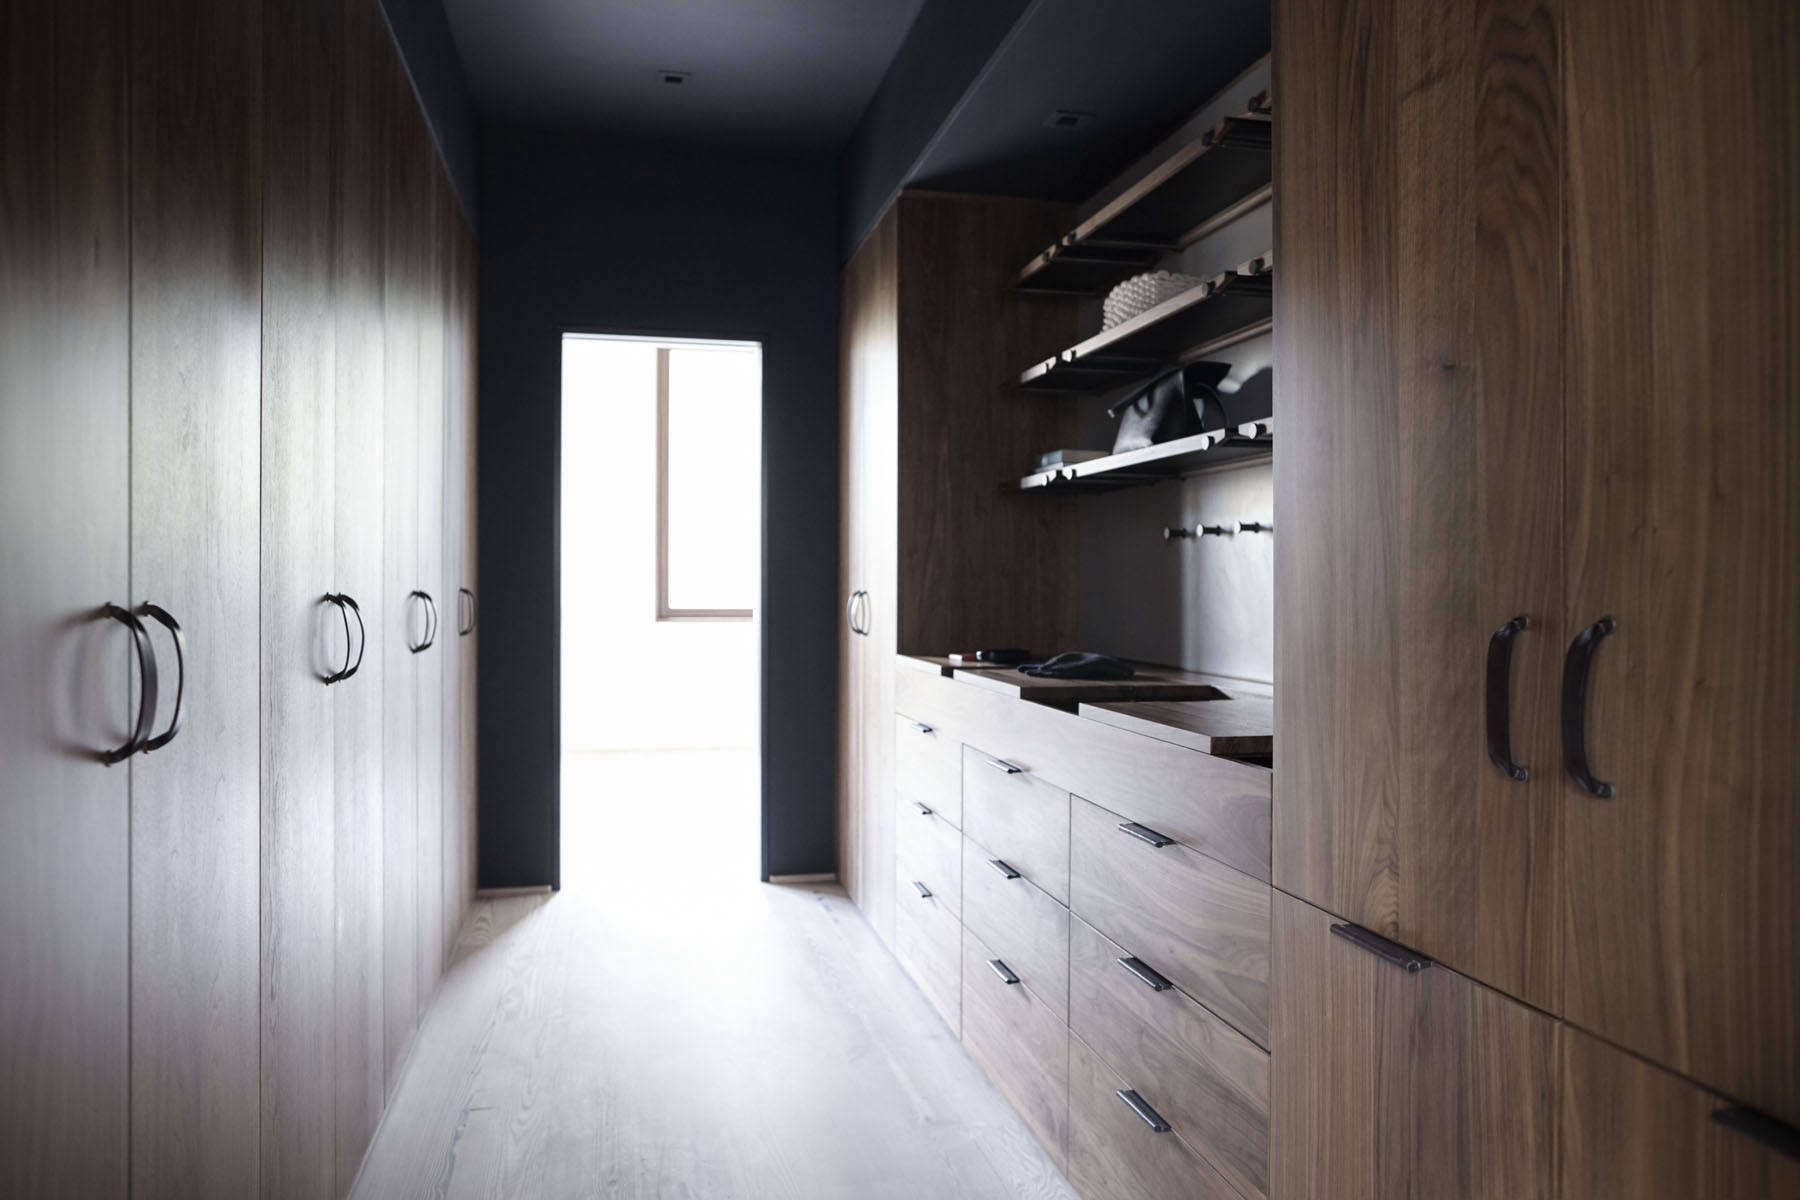 10 Best Closet Systems According To Architects And Interior Designers